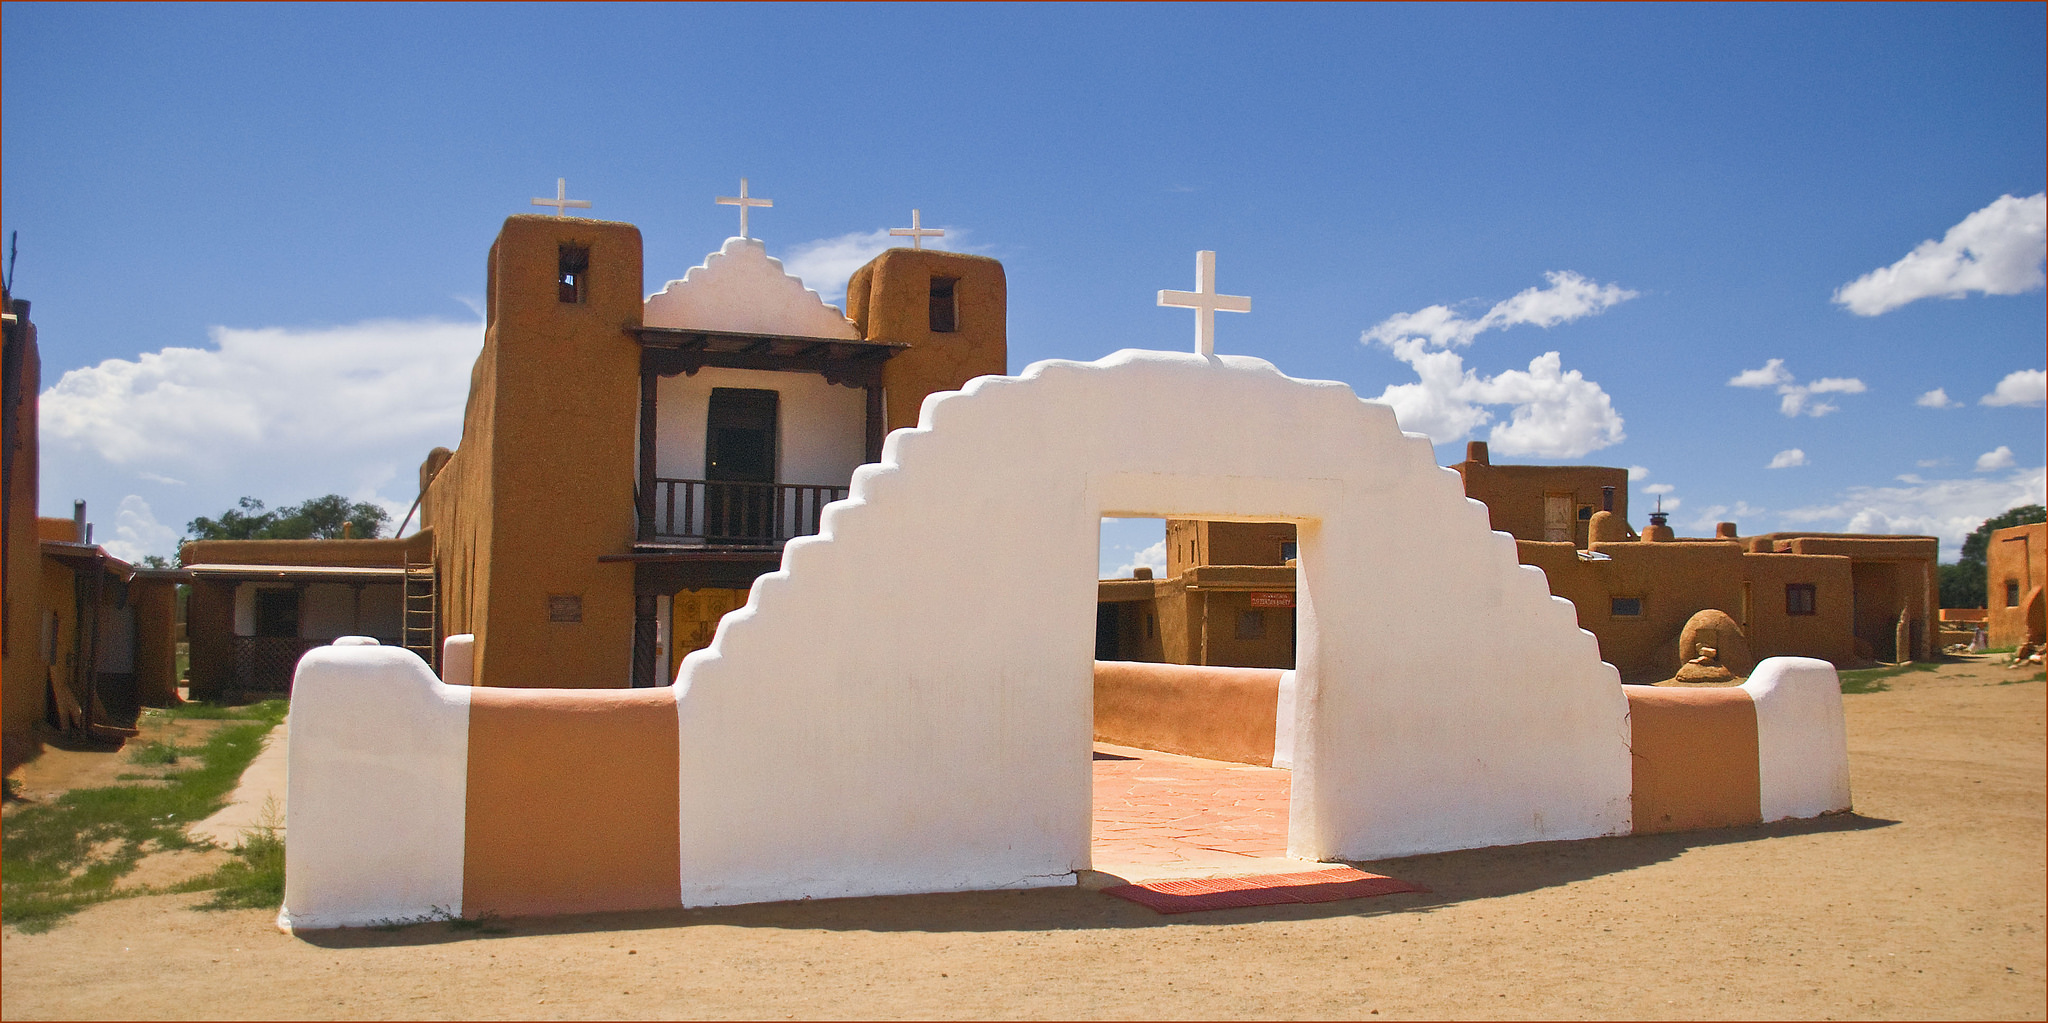 Taos In 2 Days Itinerary Of Top Places To Go And Things To